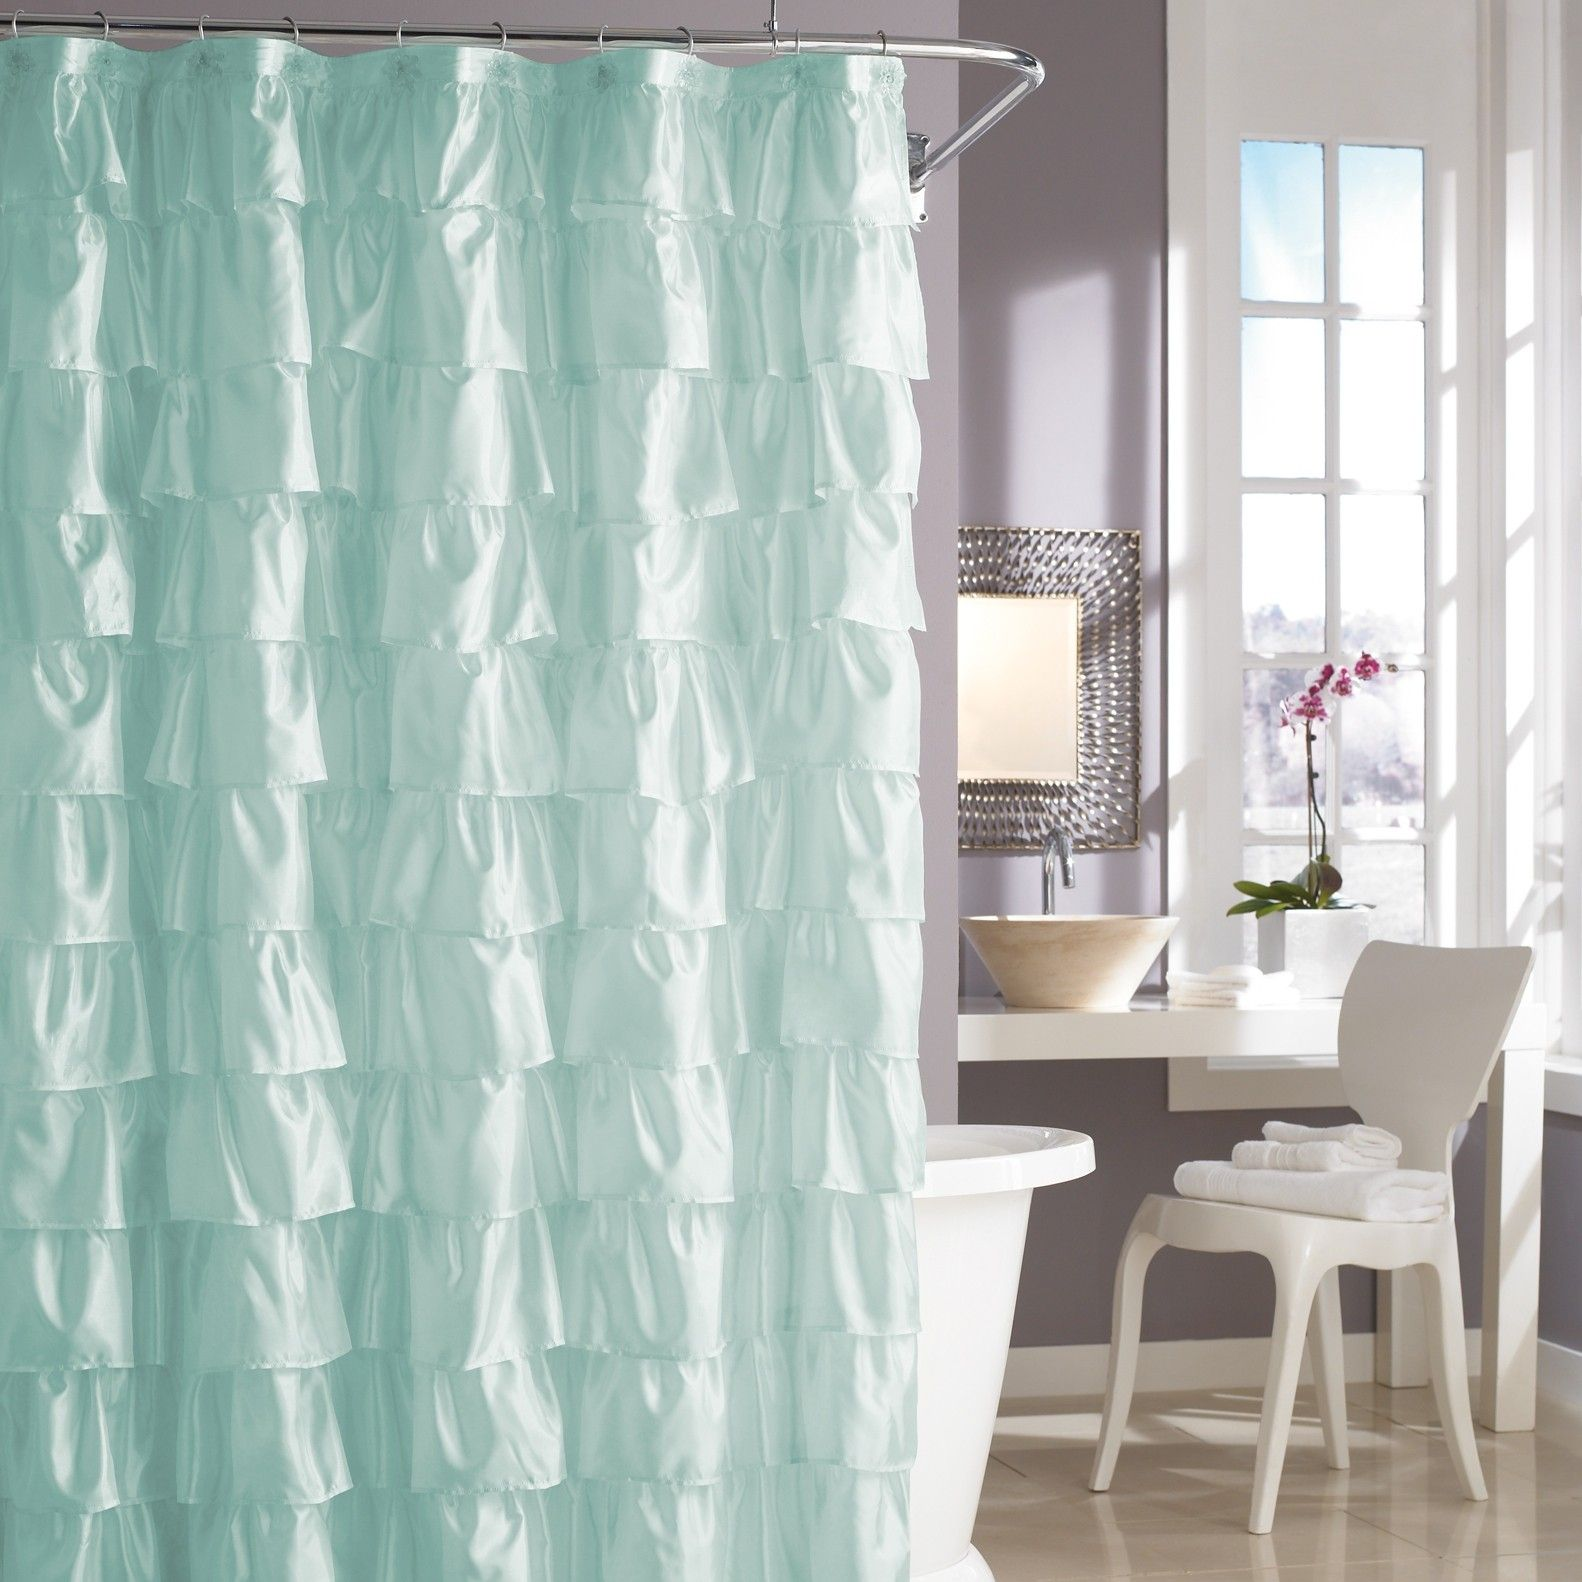 Pale Aqua Ruffle Shower Curtain Mermaid Bathroom Decor